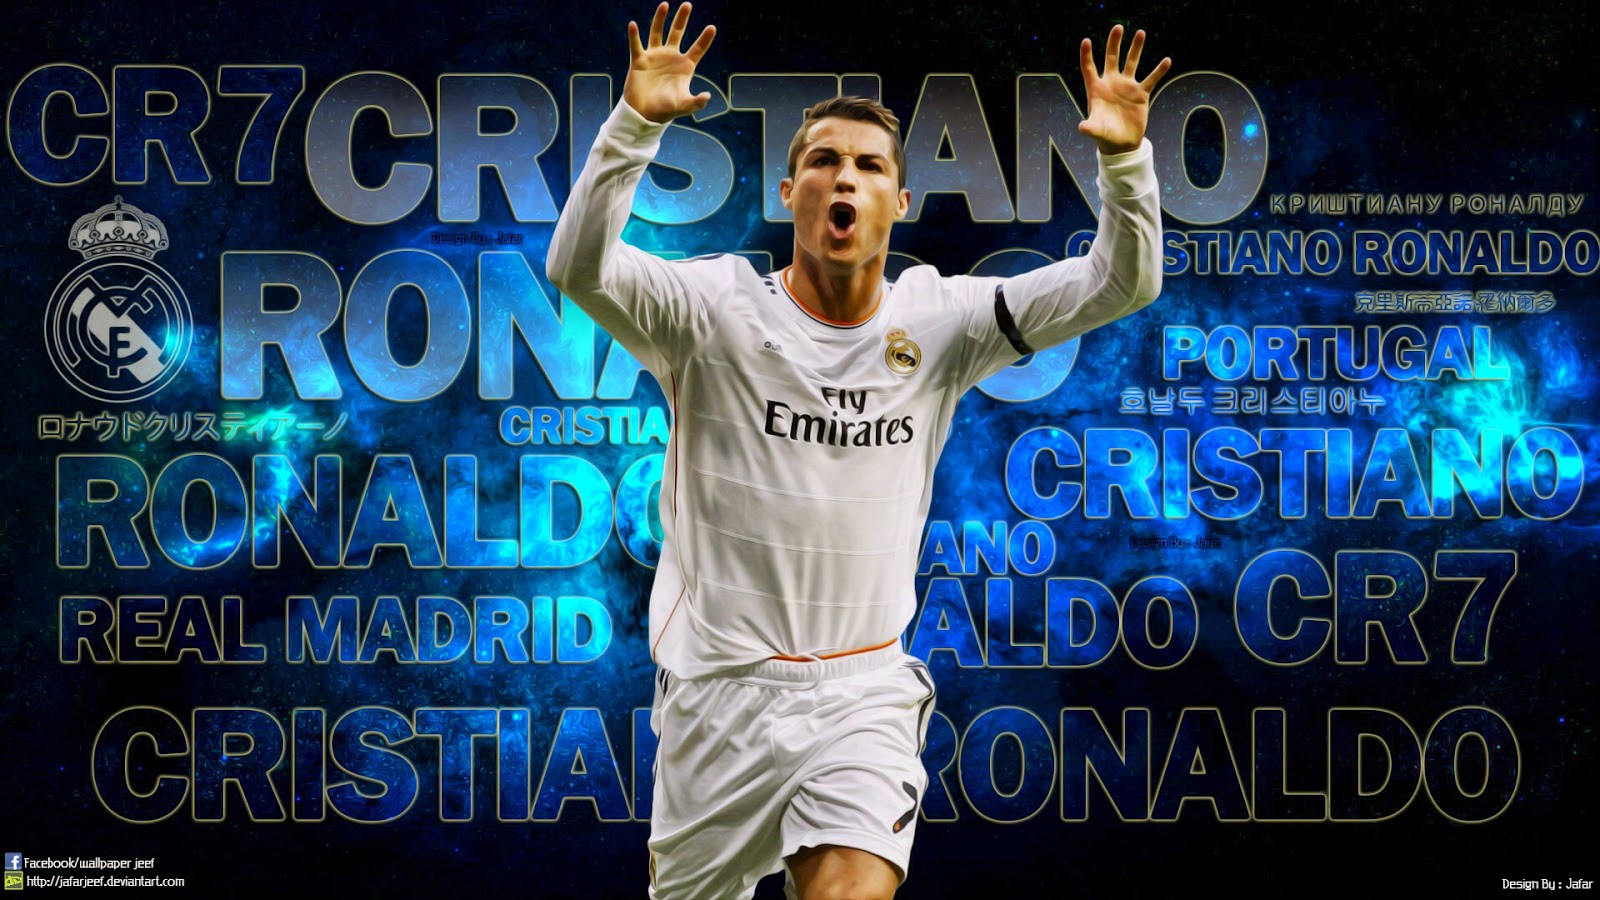 Group of cristiano ronaldo 2013 2014 wallpapers cristiano ronaldo wallpapers 2013 14 catatan madridista voltagebd Choice Image